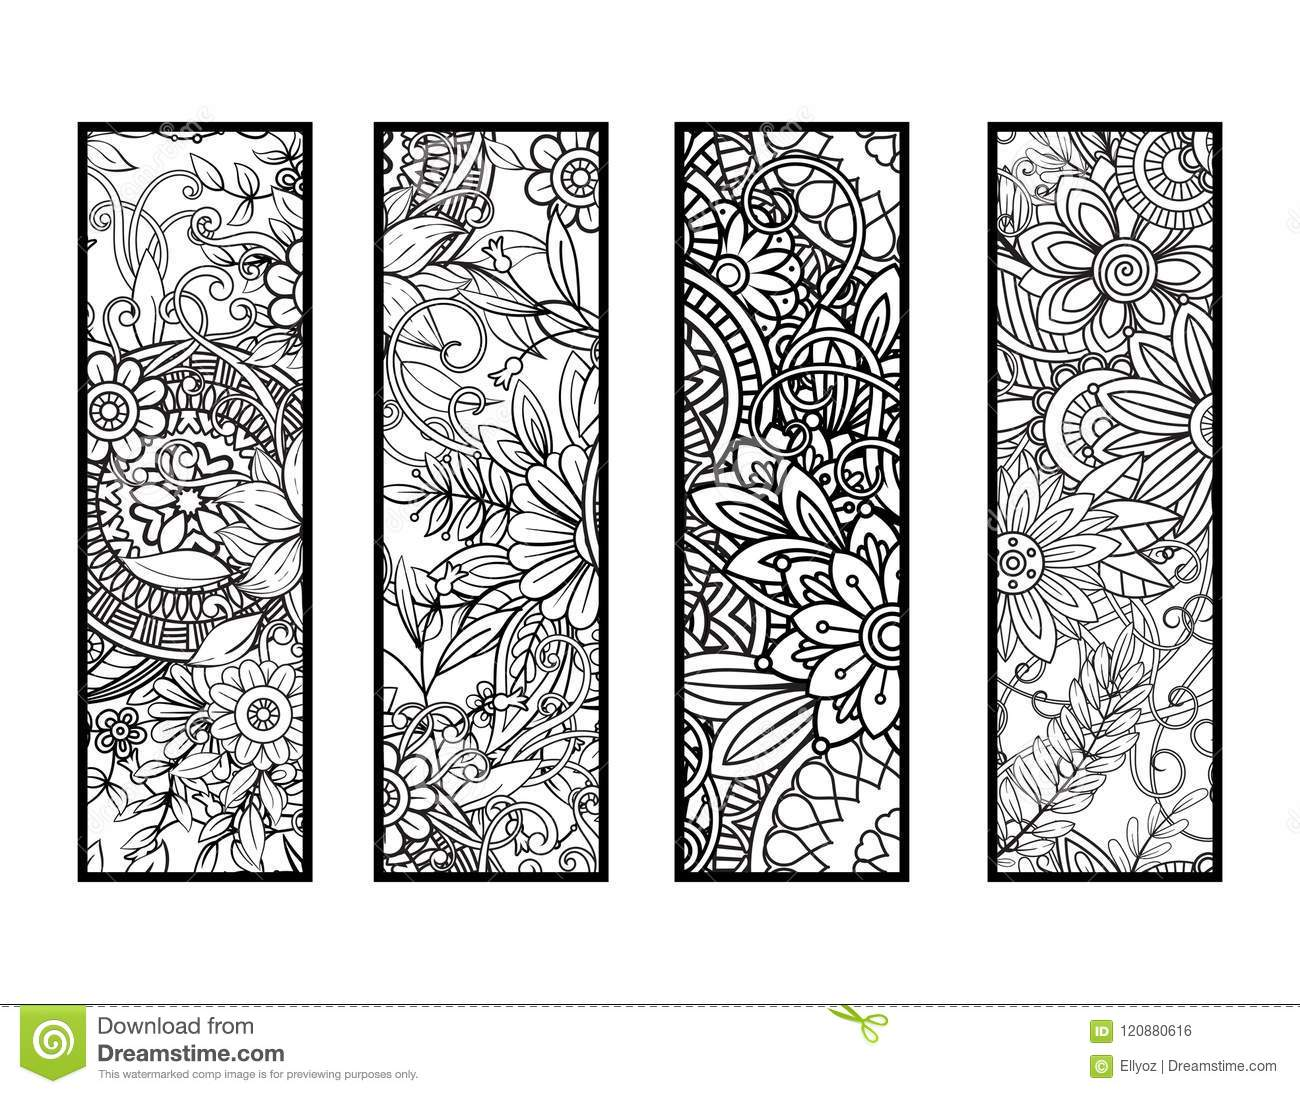 Coloring bookmarks set stock vector. Illustration of bookmarks ...